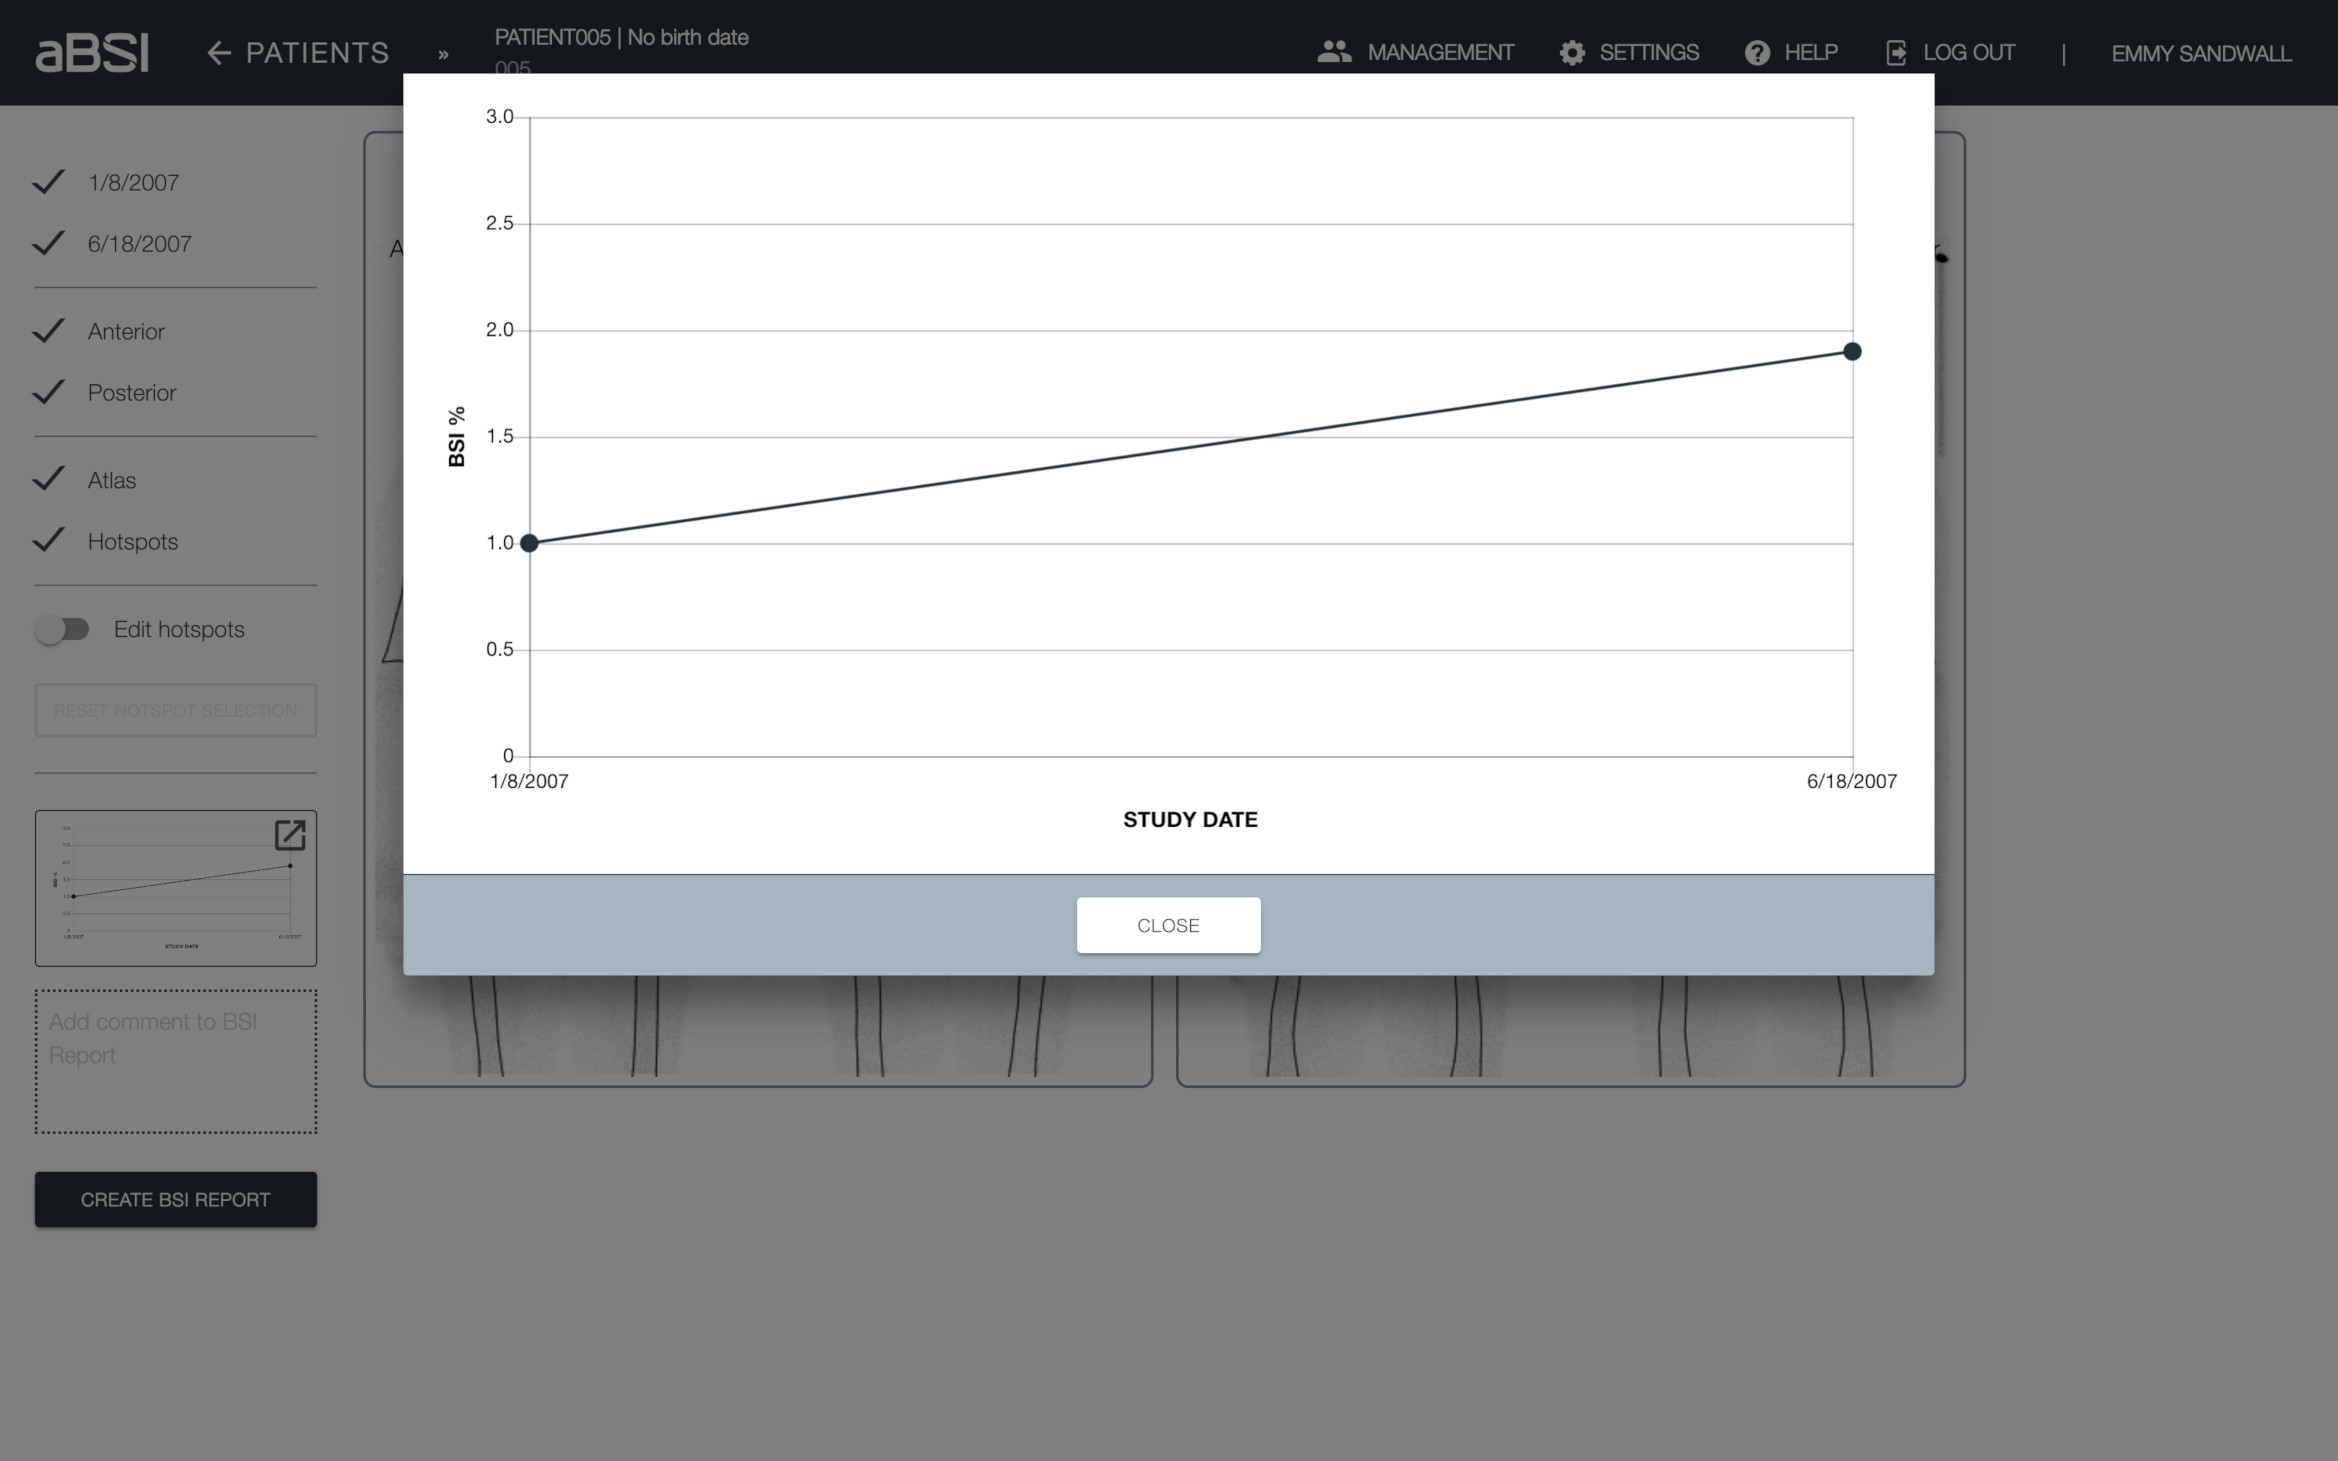 Graphical Visualization  aBSI generates a trend curve to make it easier to compare BSI values between studies.